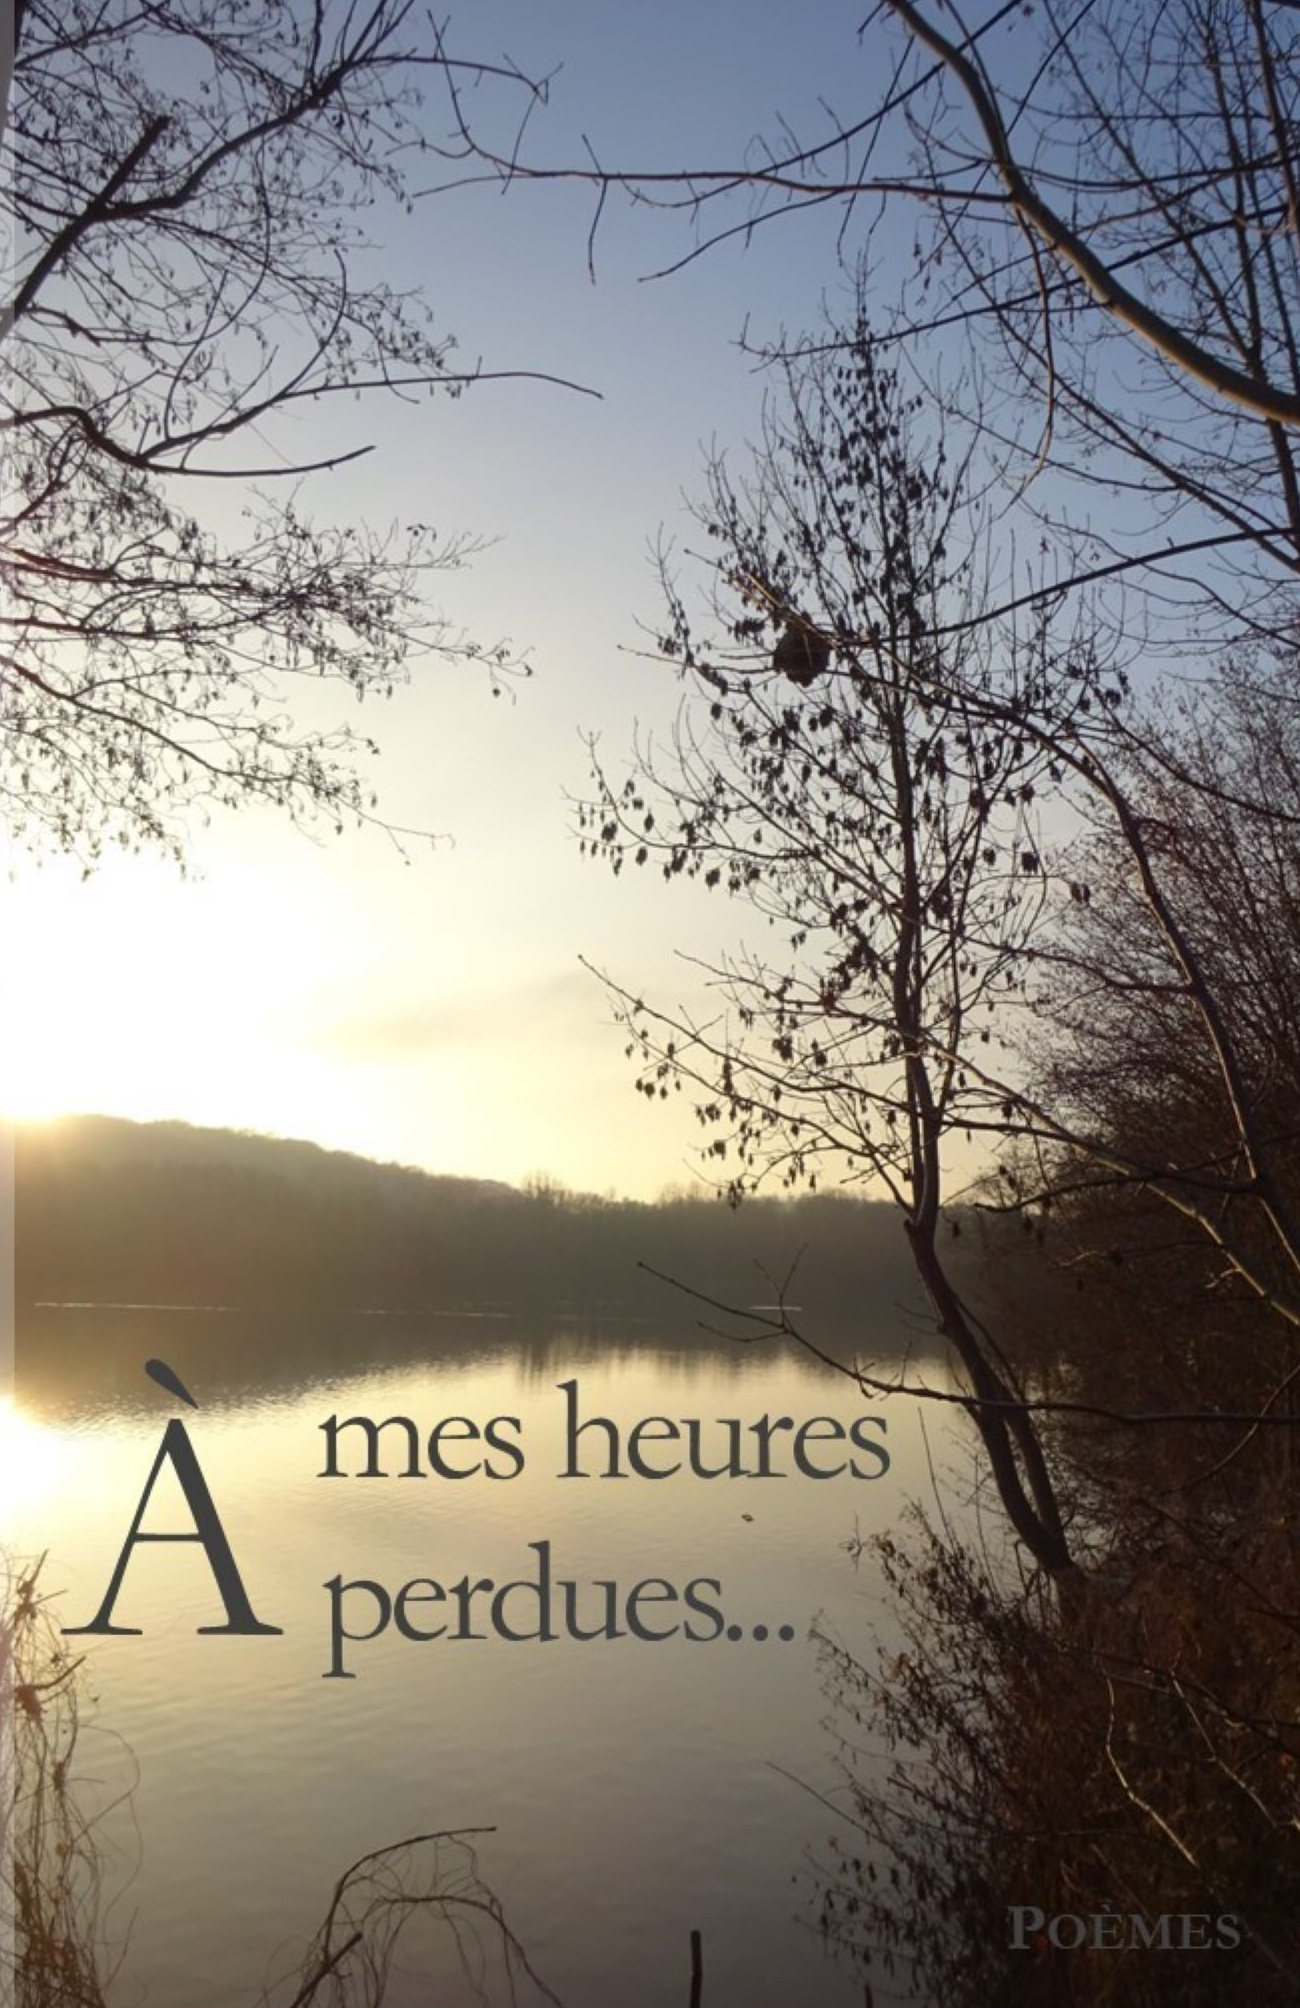 A mes heures perdues